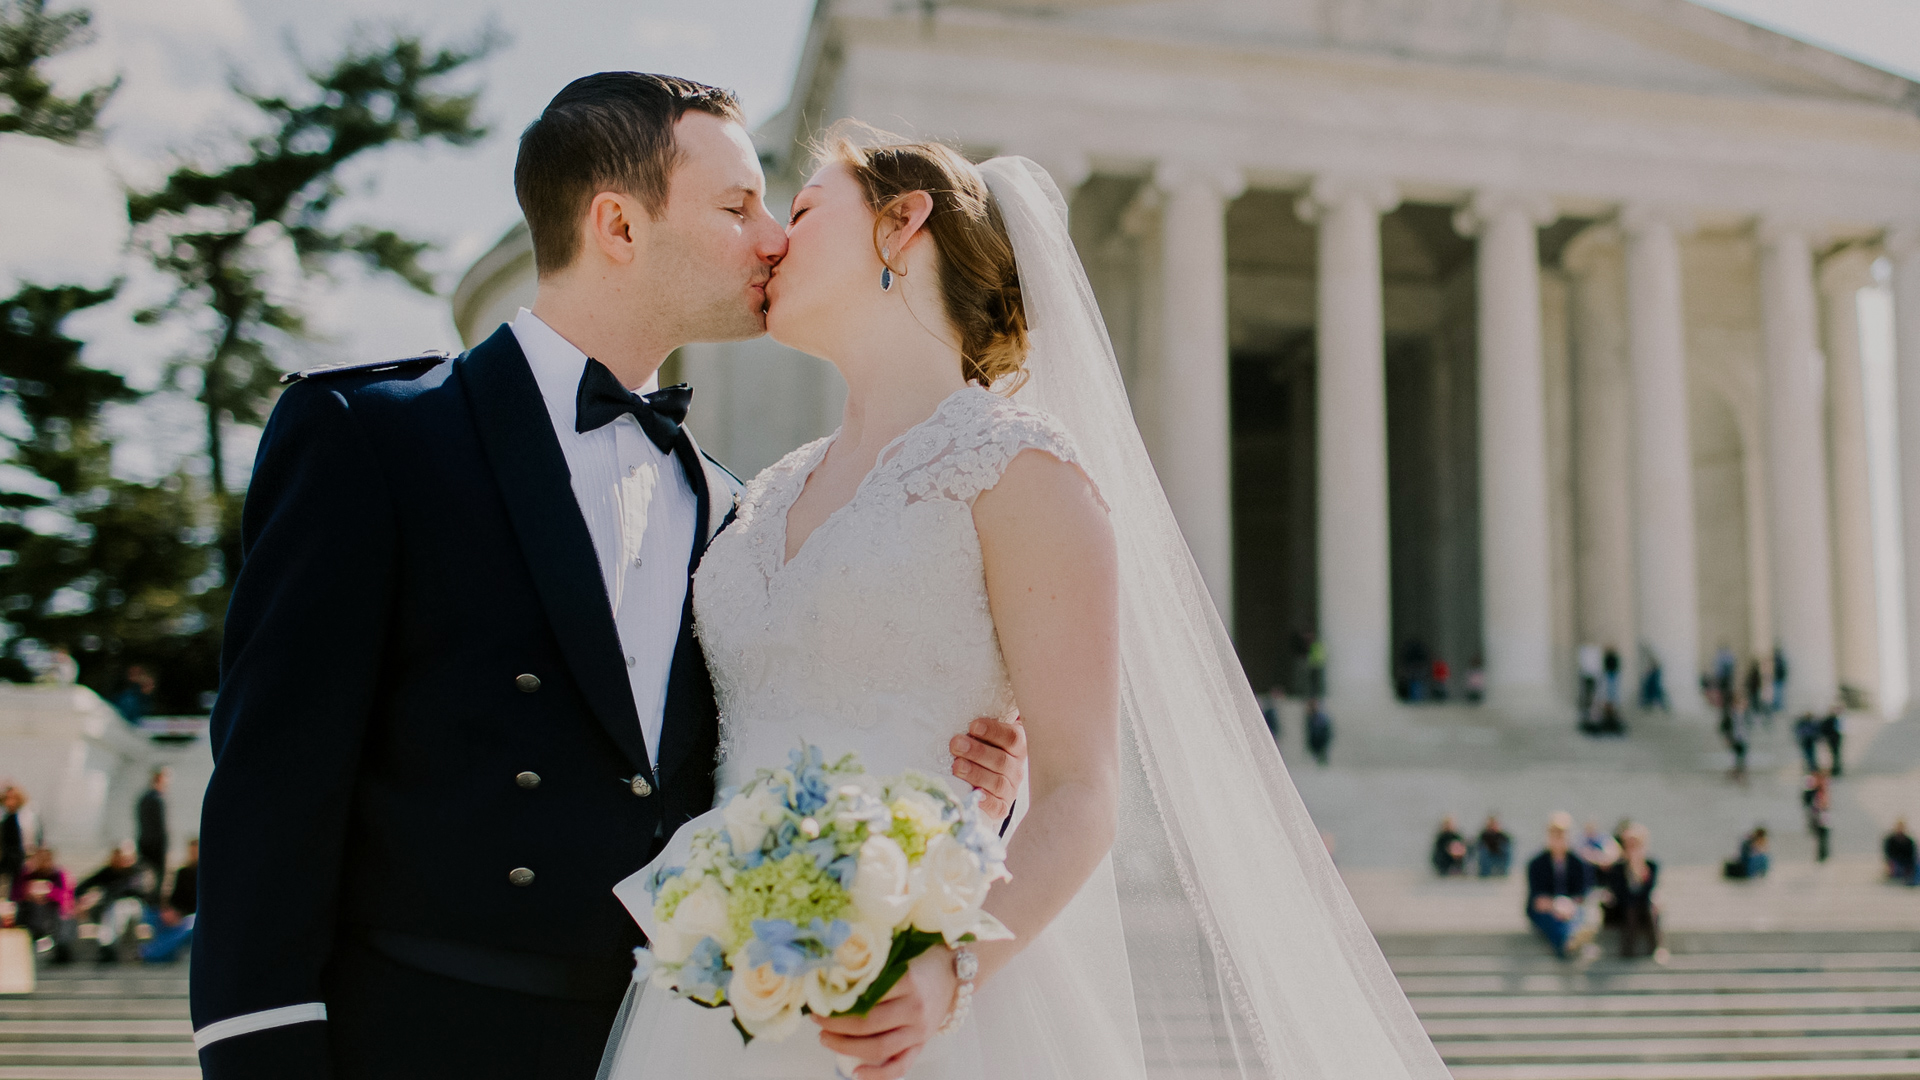 Check portfolios, pricing and availability for wedding photographers in Washington DC